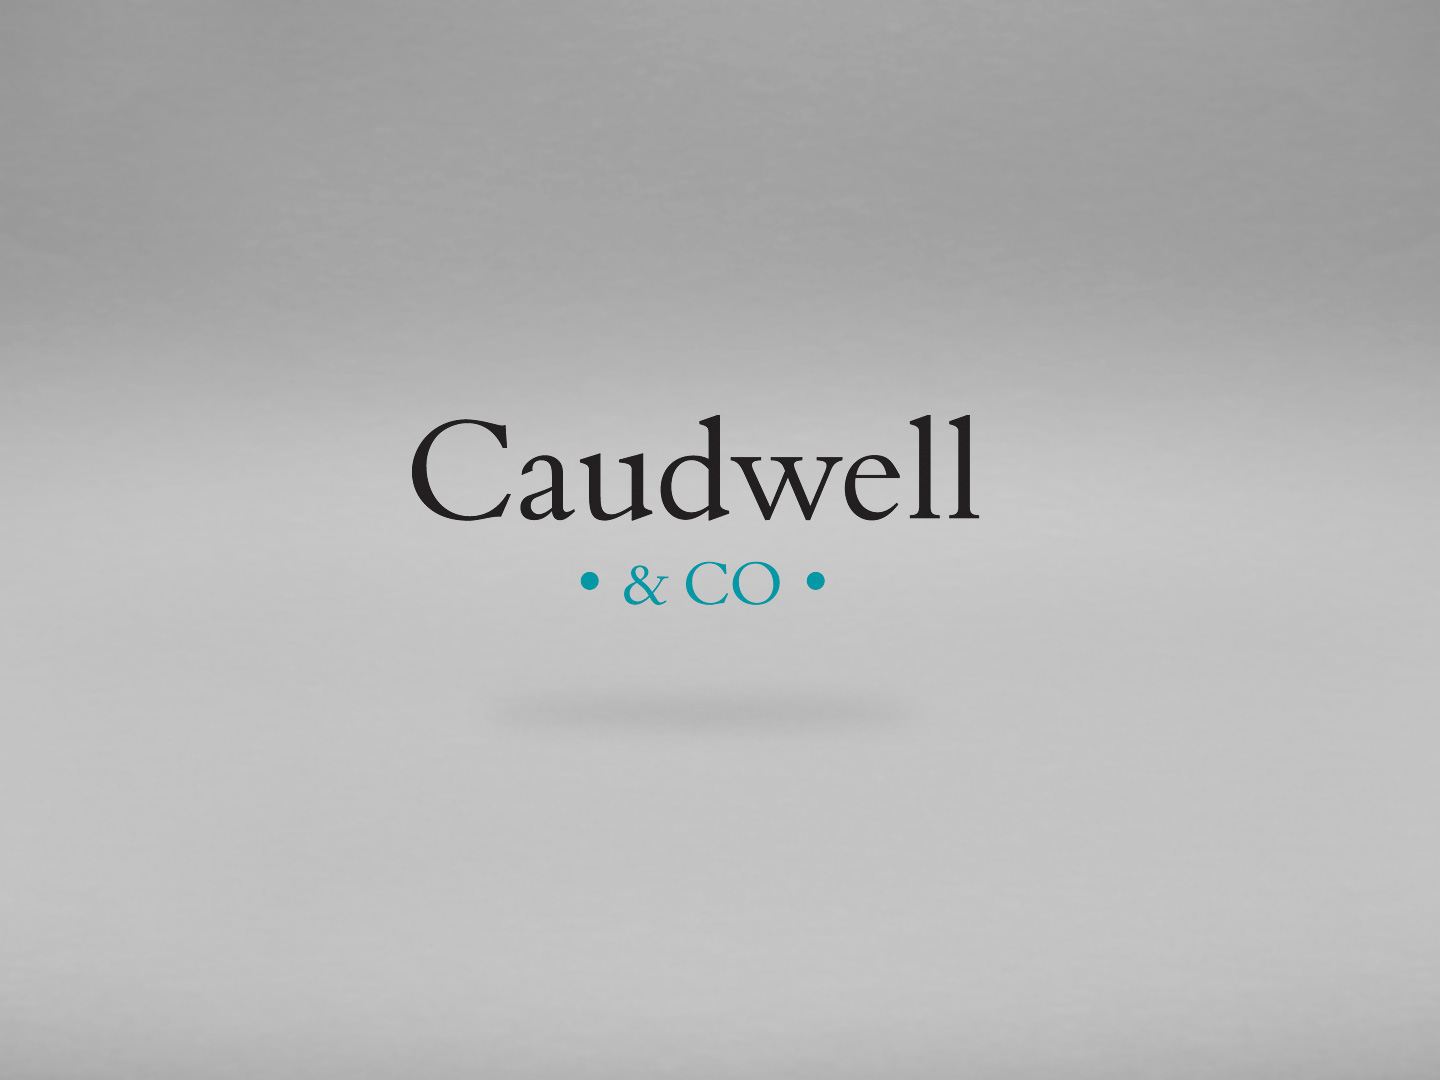 caudwell and co, estate agents, property, house, homes, sale rent, grafika, bakewell, derbyshire, branding, logo, stationery, graphic design, agency, peak district, sheffield, chesterfield, manchester, derby